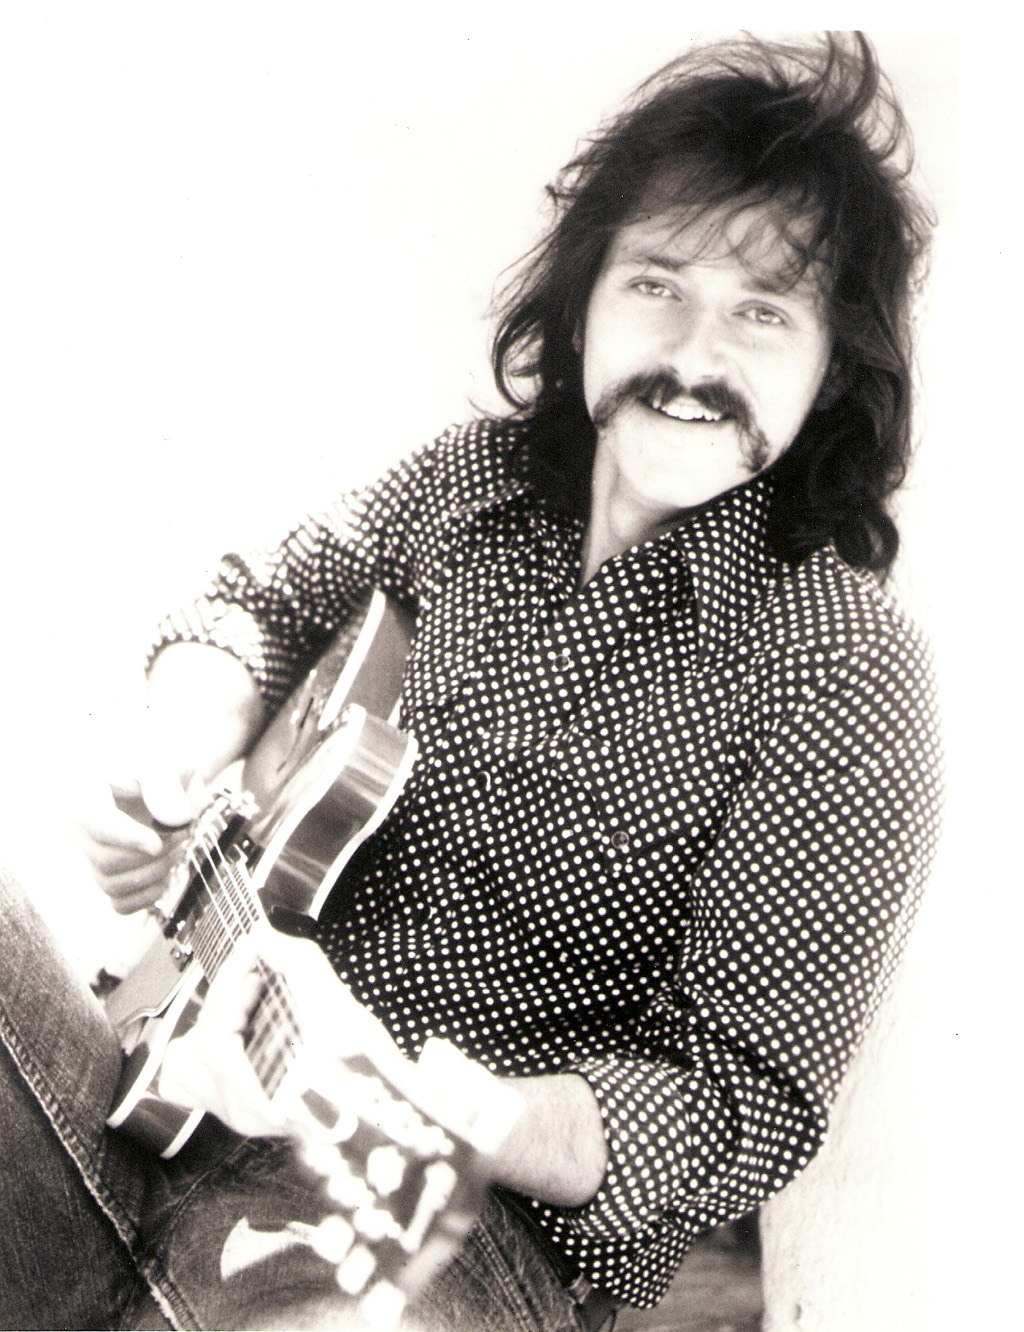 Jesse Colin Young